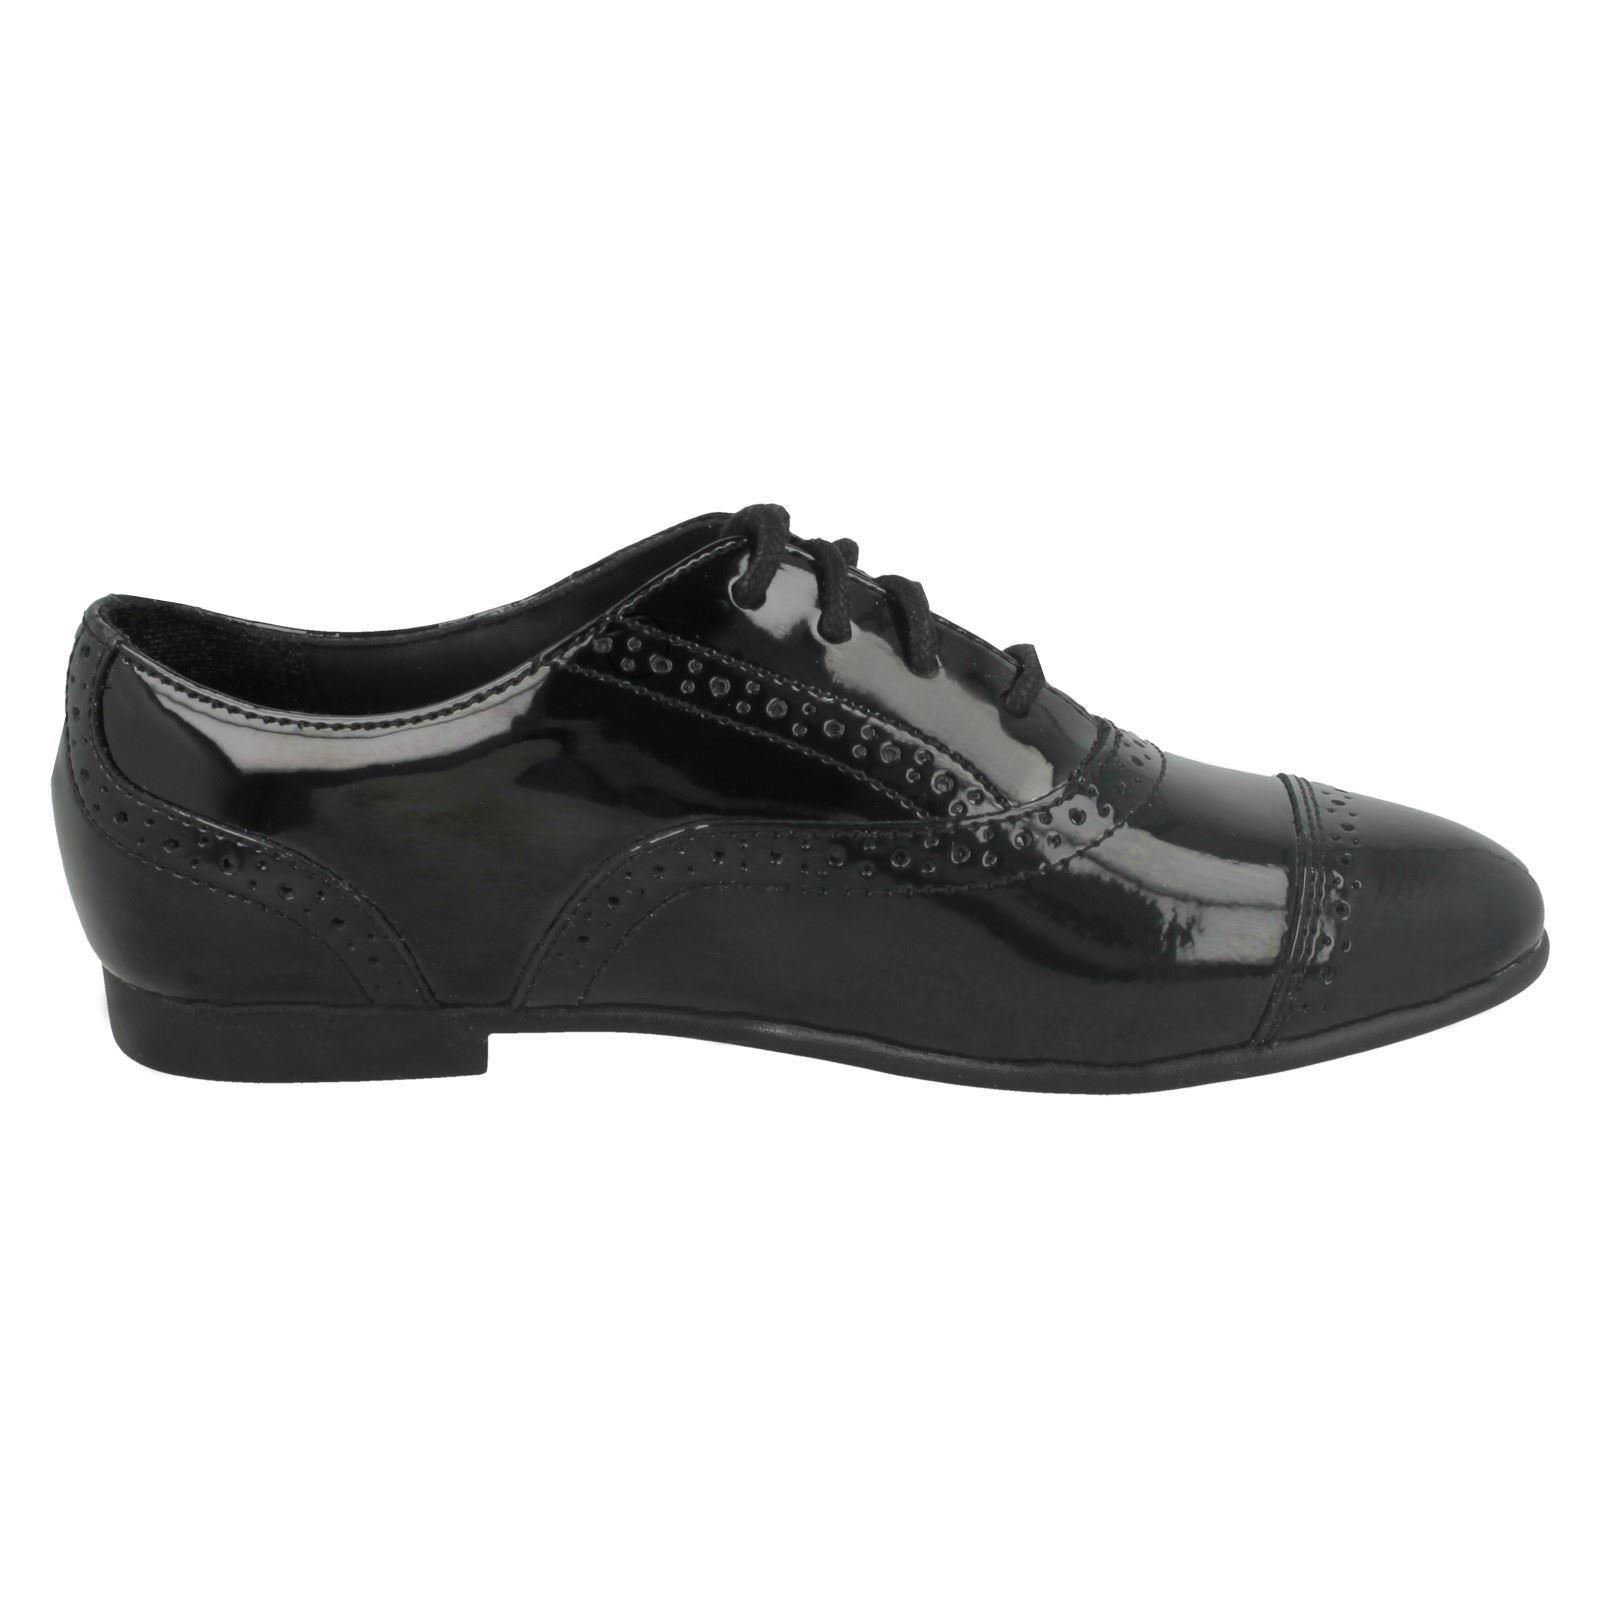 Girls Clarks Selsey Cool Brogue Style School Shoes